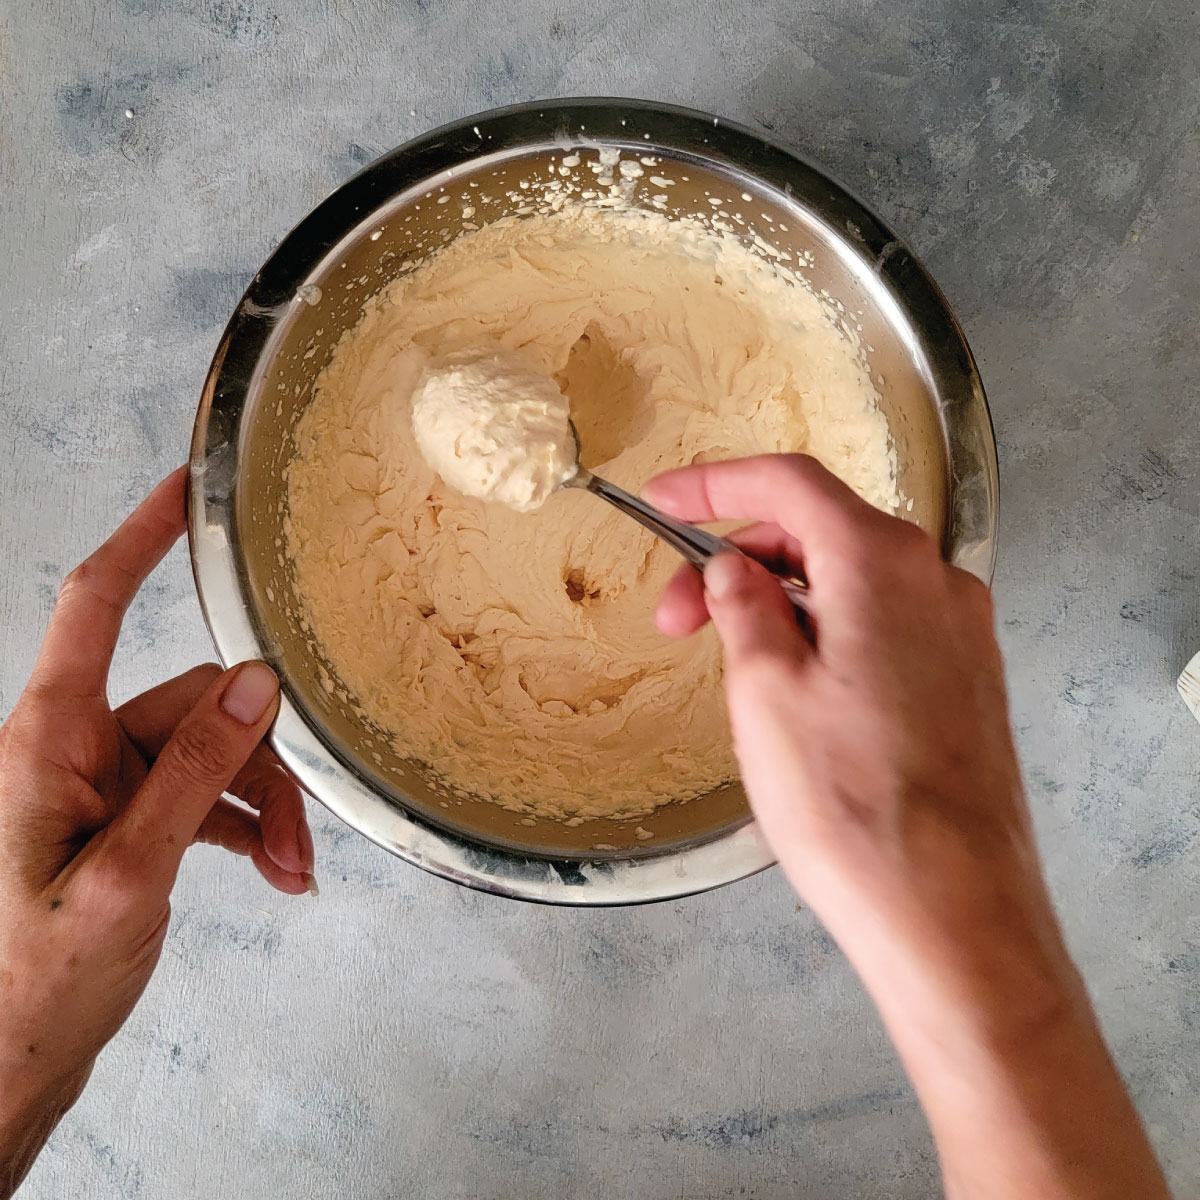 Whipped cream in a bowl with a spoonful scooped out to show the consistency of soft peaks.